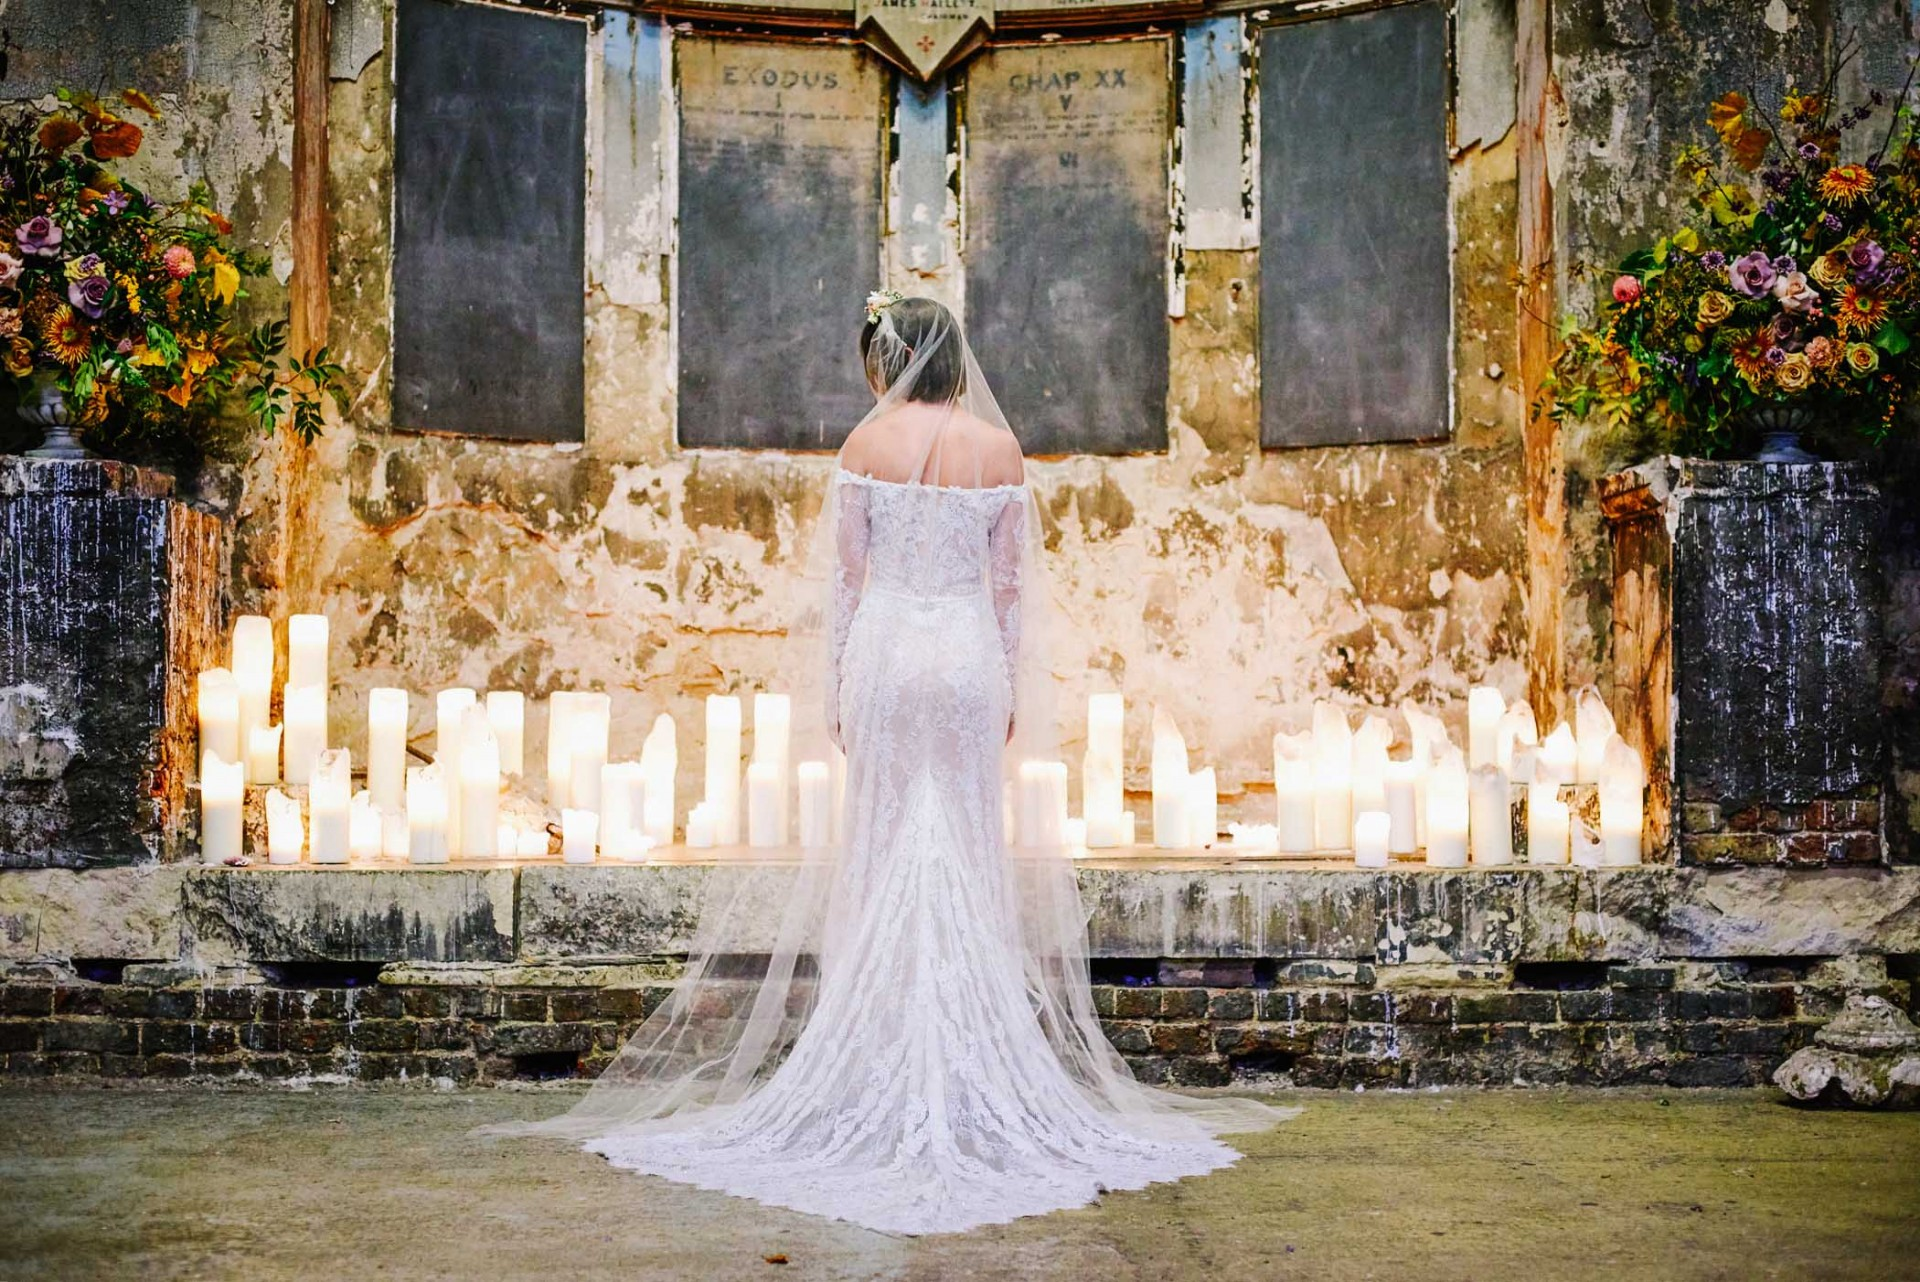 Bride posing in lace gown surrounded by candles in front of a decaying wall at the Asylum in London